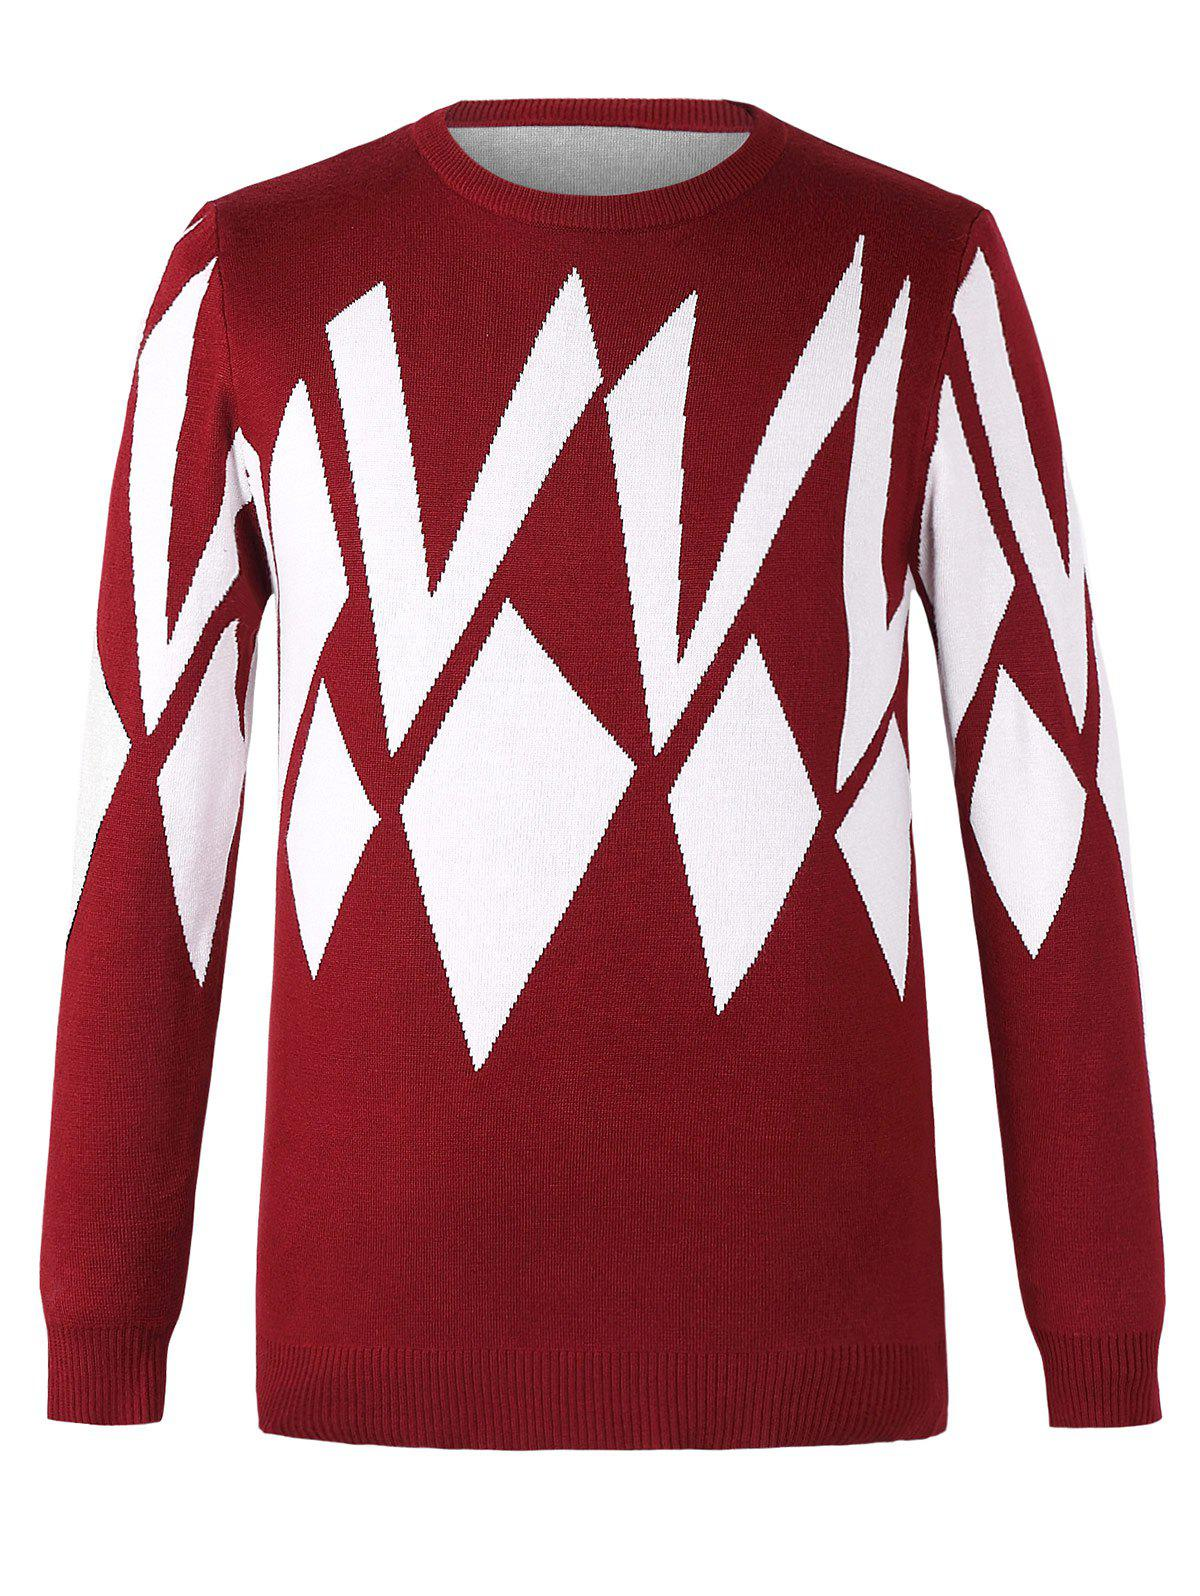 Chic Geometric Design Round Neck Long Sleeves Sweater For Men - RED 4XL